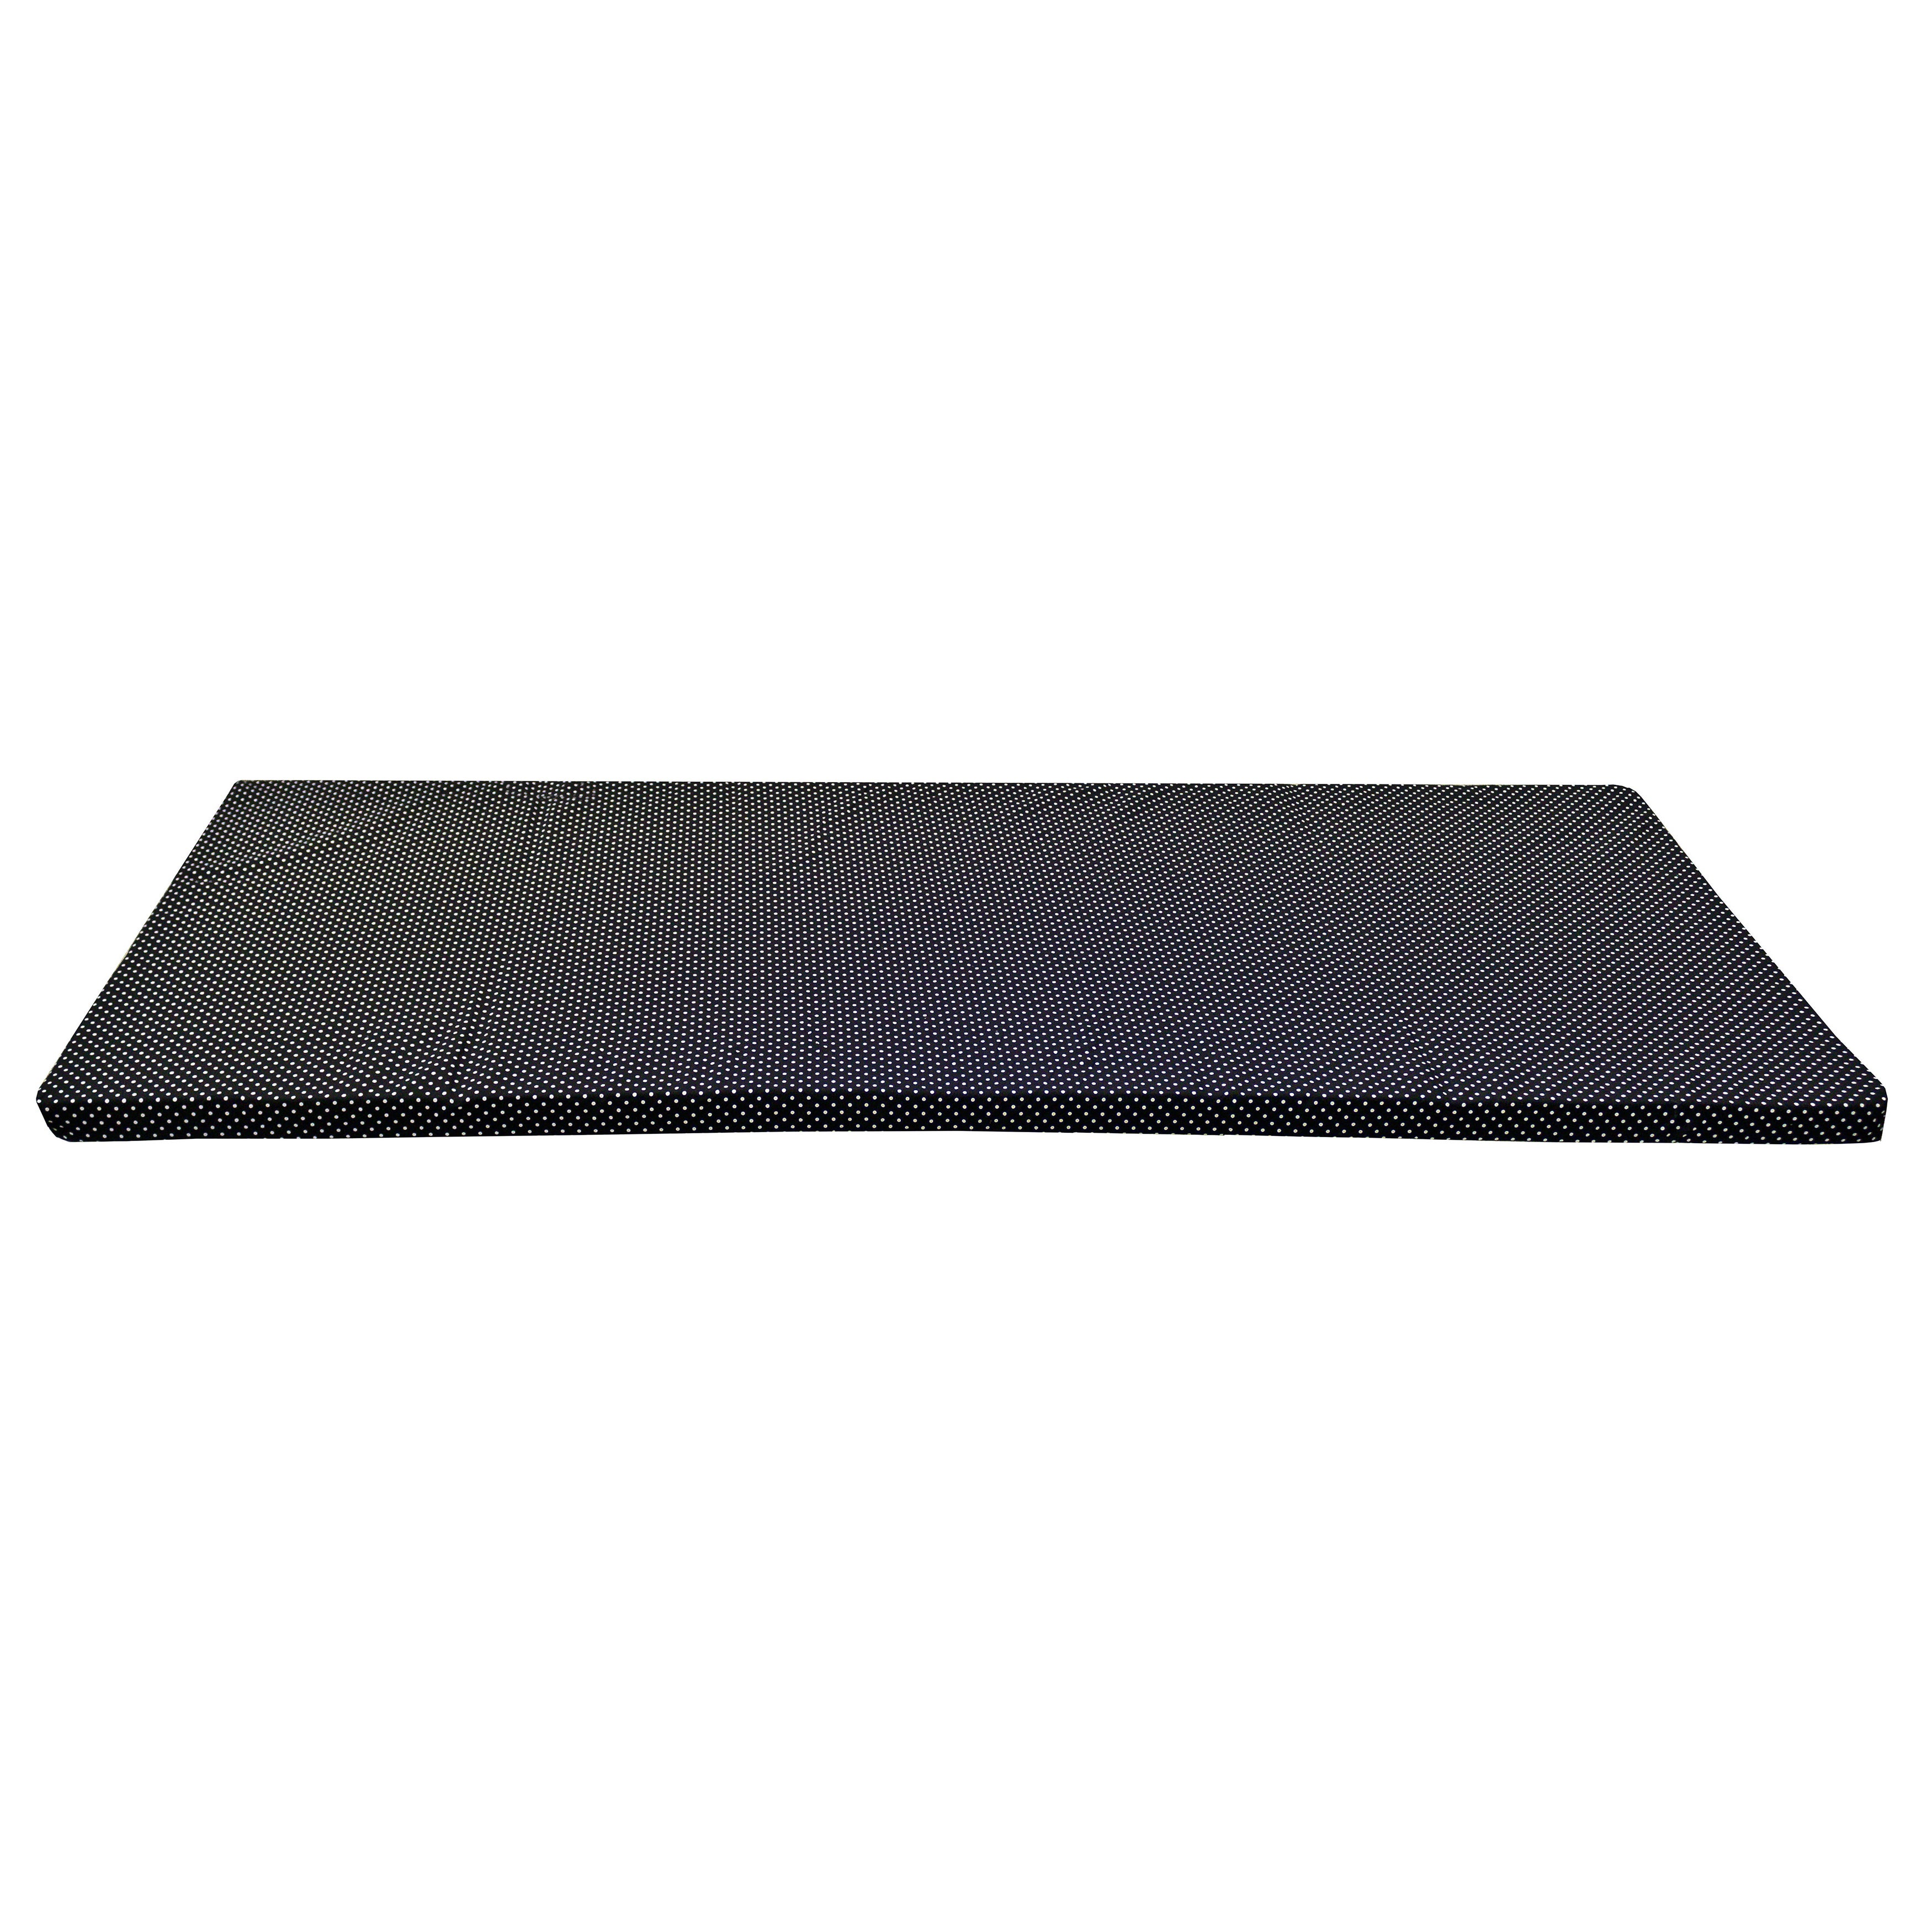 Forest Valley Flooring iBED 2-inch Foam Replacement Mattr...